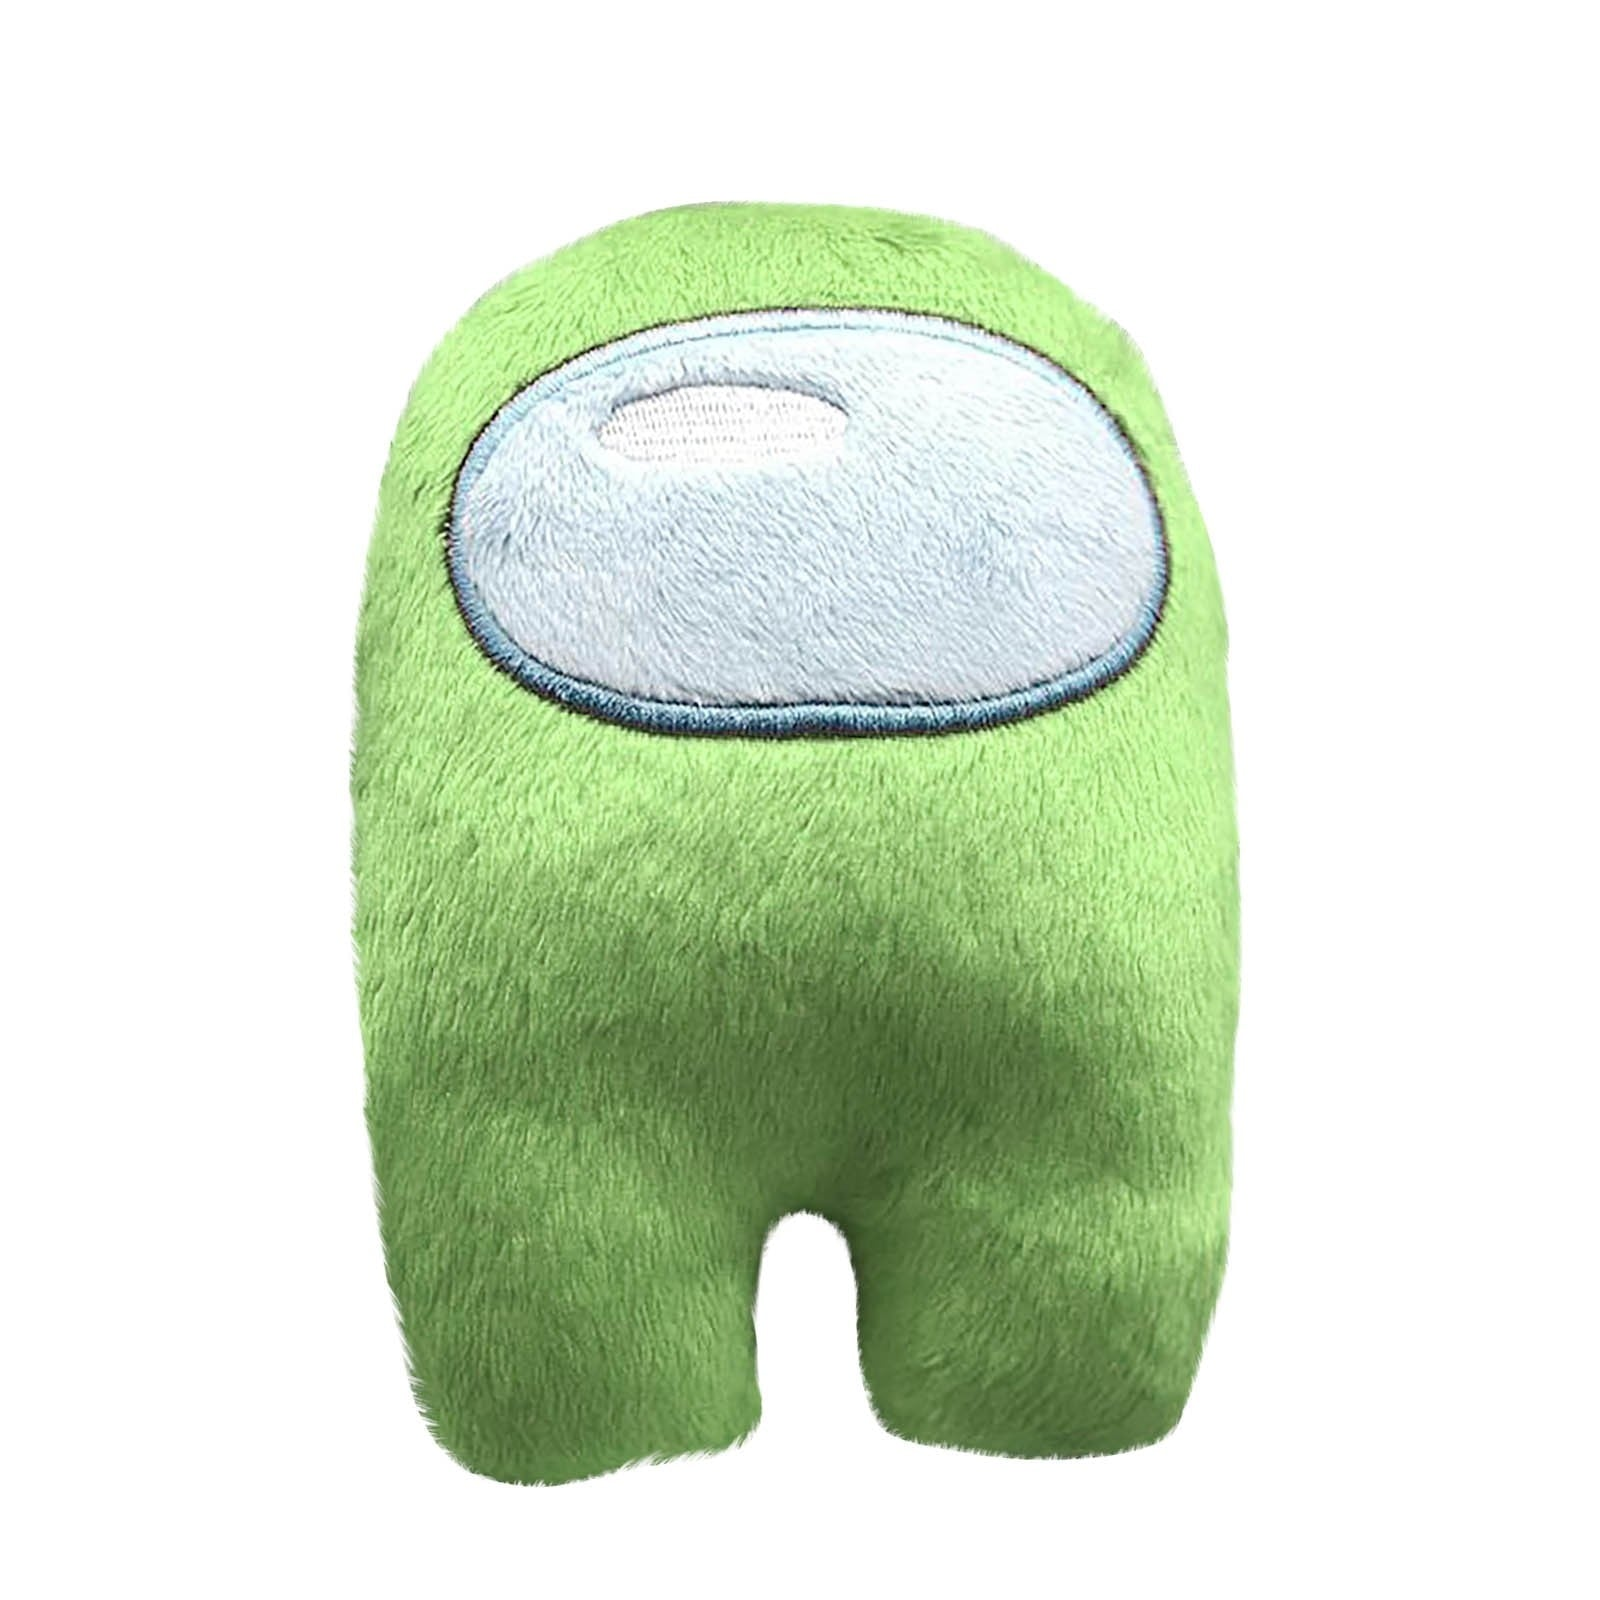 Kawaii Style Soft Plush Stuffed Animal For Kids, Among Us Kawaii Style Stuffed Doll With Music, Great As A Christmas Gift Toys